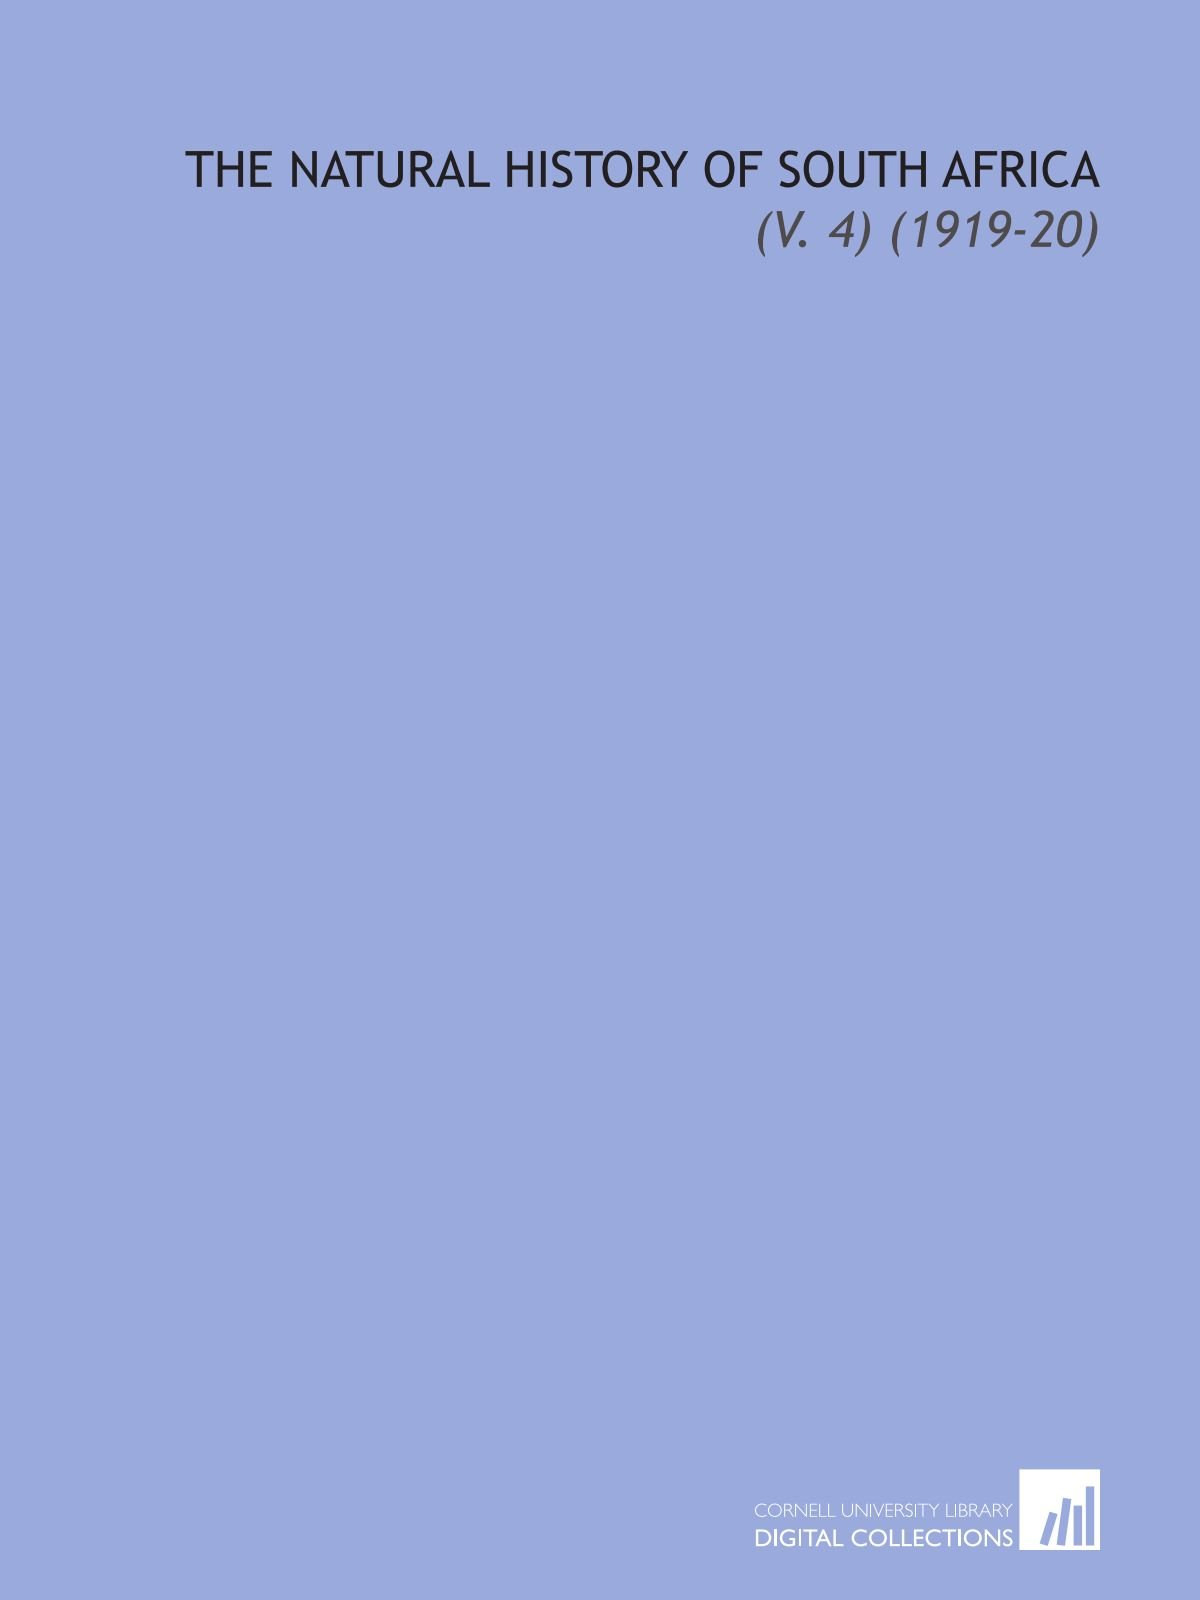 Download The Natural History of South Africa: (V. 4) (1919-20) PDF